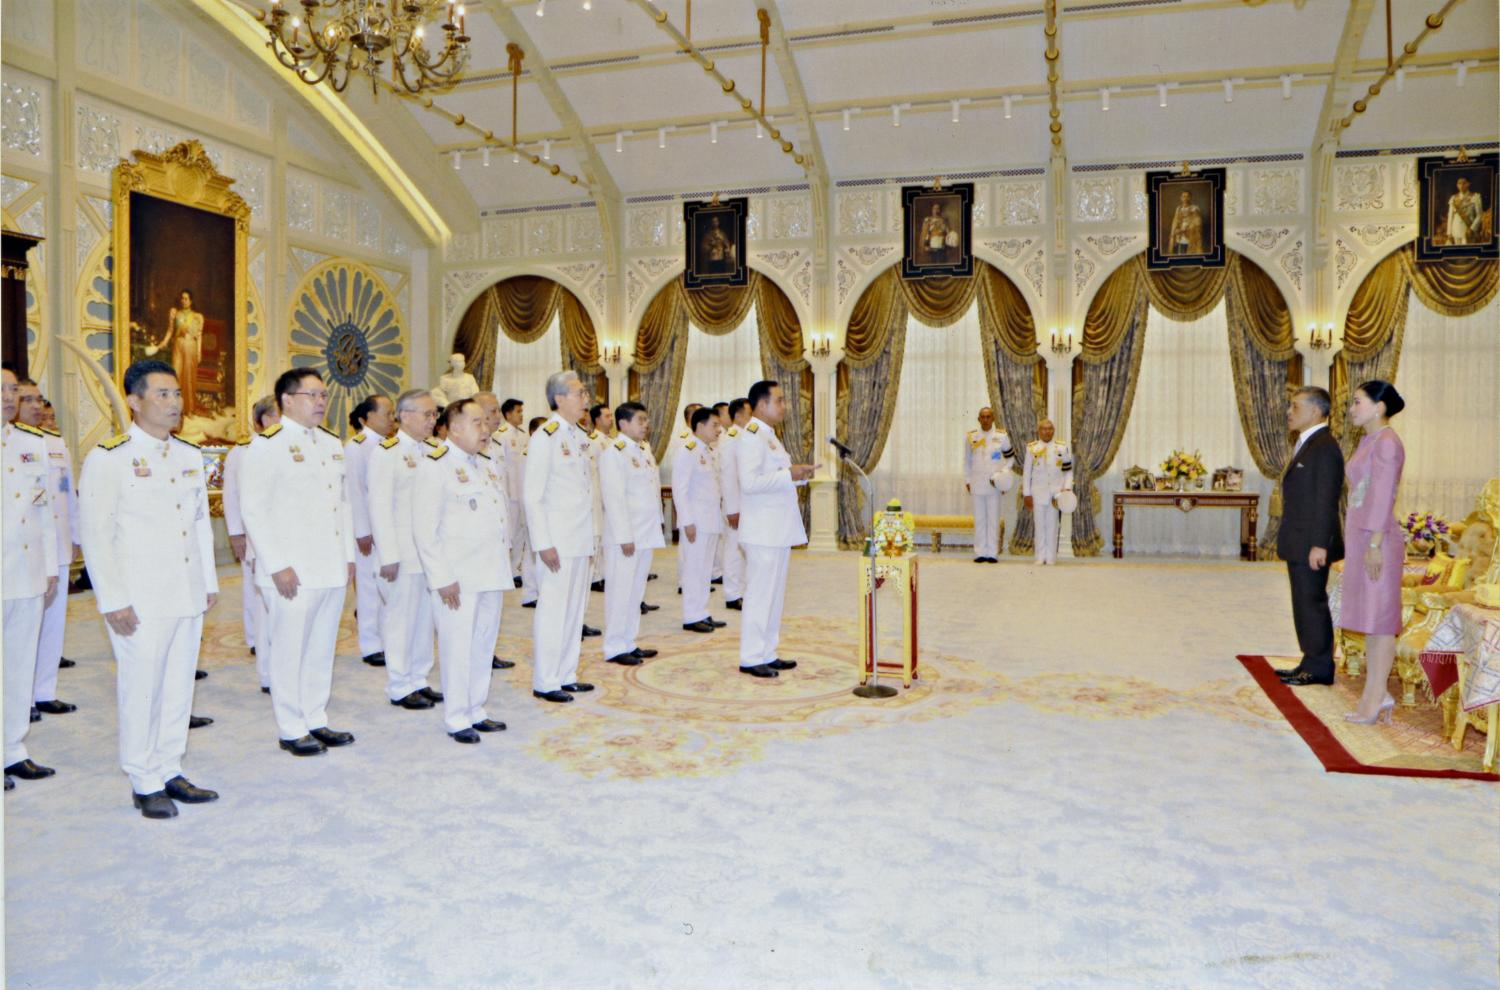 His Majesty the King gives an address to 36 cabinet ministers led by Prime Minister Prayut Chan-o-cha after they took an oath of office during the swearing-in ceremony at the Ambara Villa in the Dusit Palace yesterday. His Majesty was accompanied by Her Majesty the Queen. photo courtesy of the Royal Household Bureau